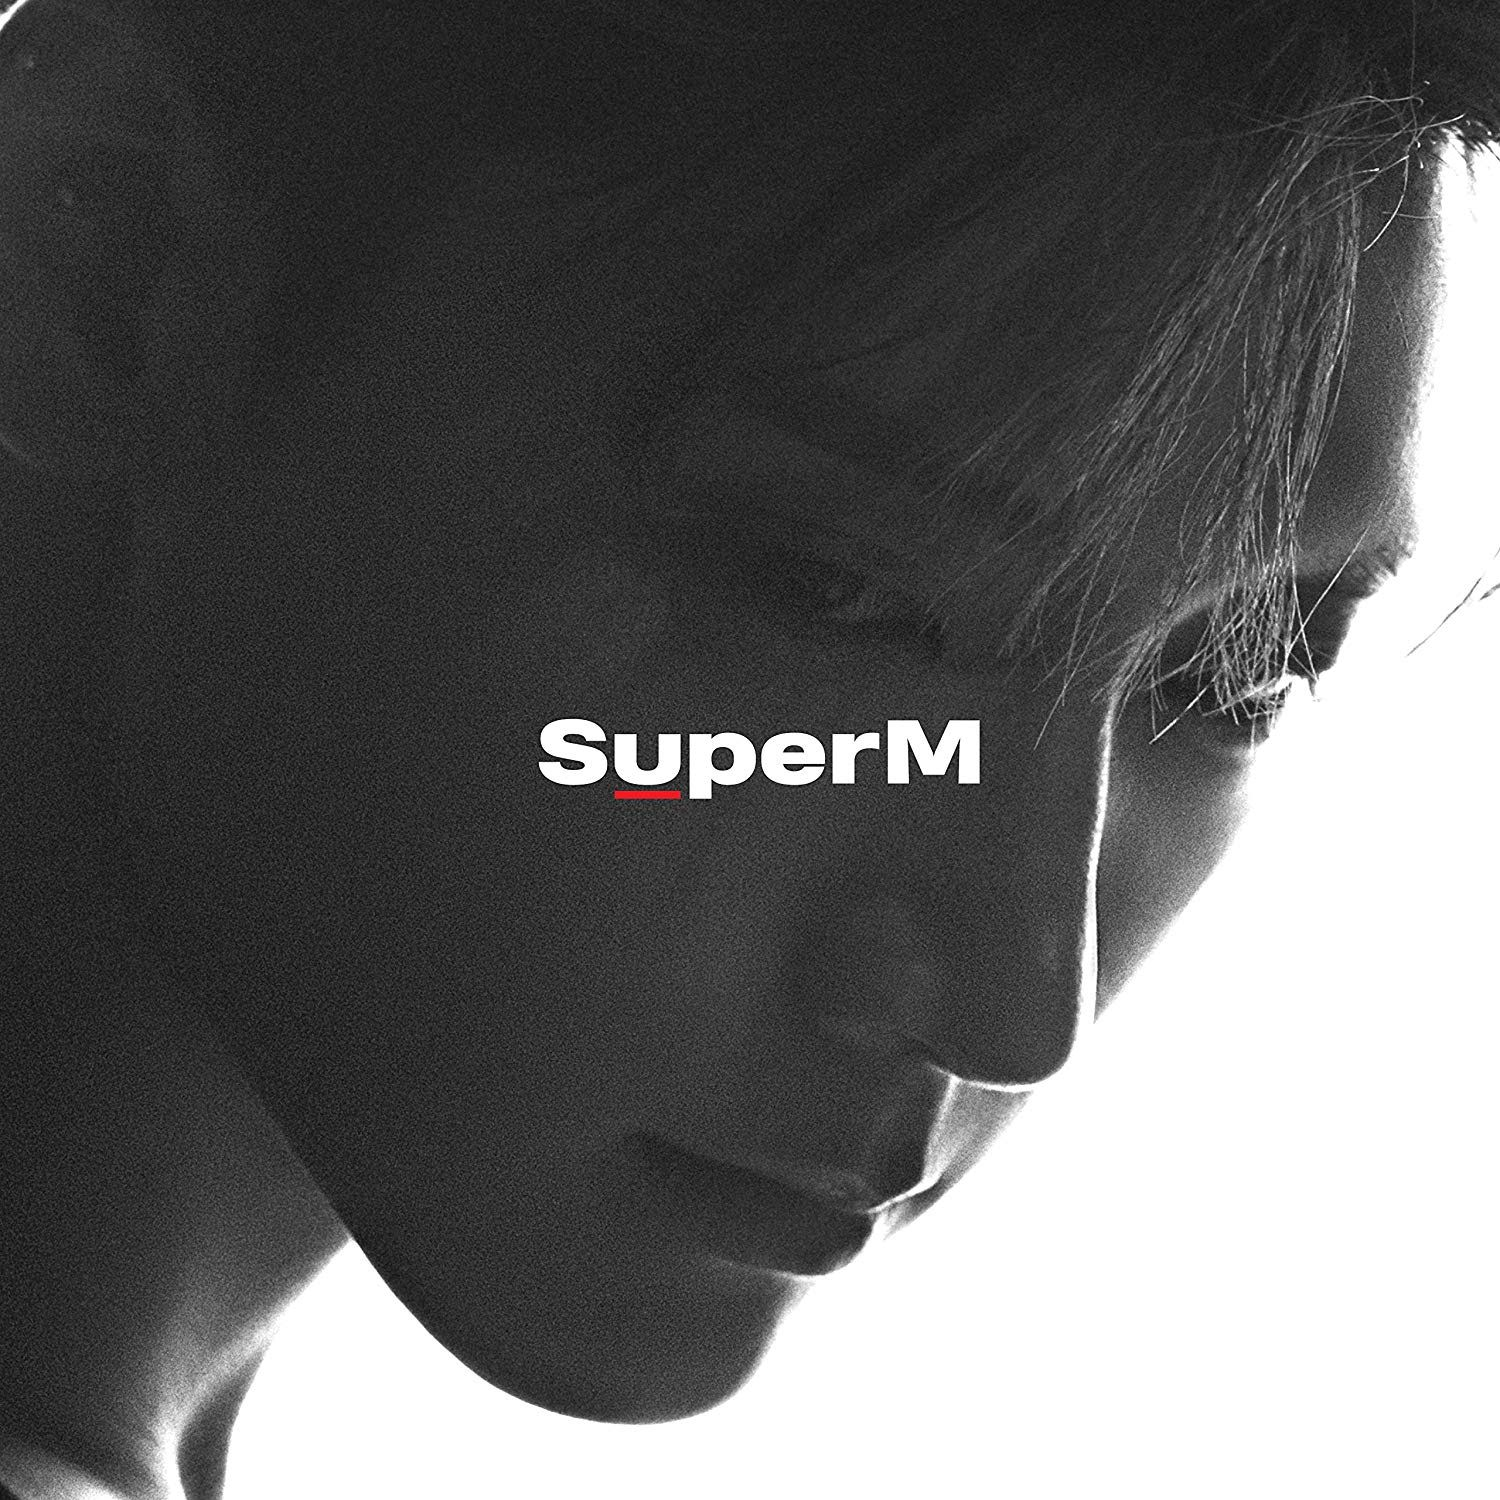 SuperM Album Available For Pre Order On Amazon Suggests Set Debut Date